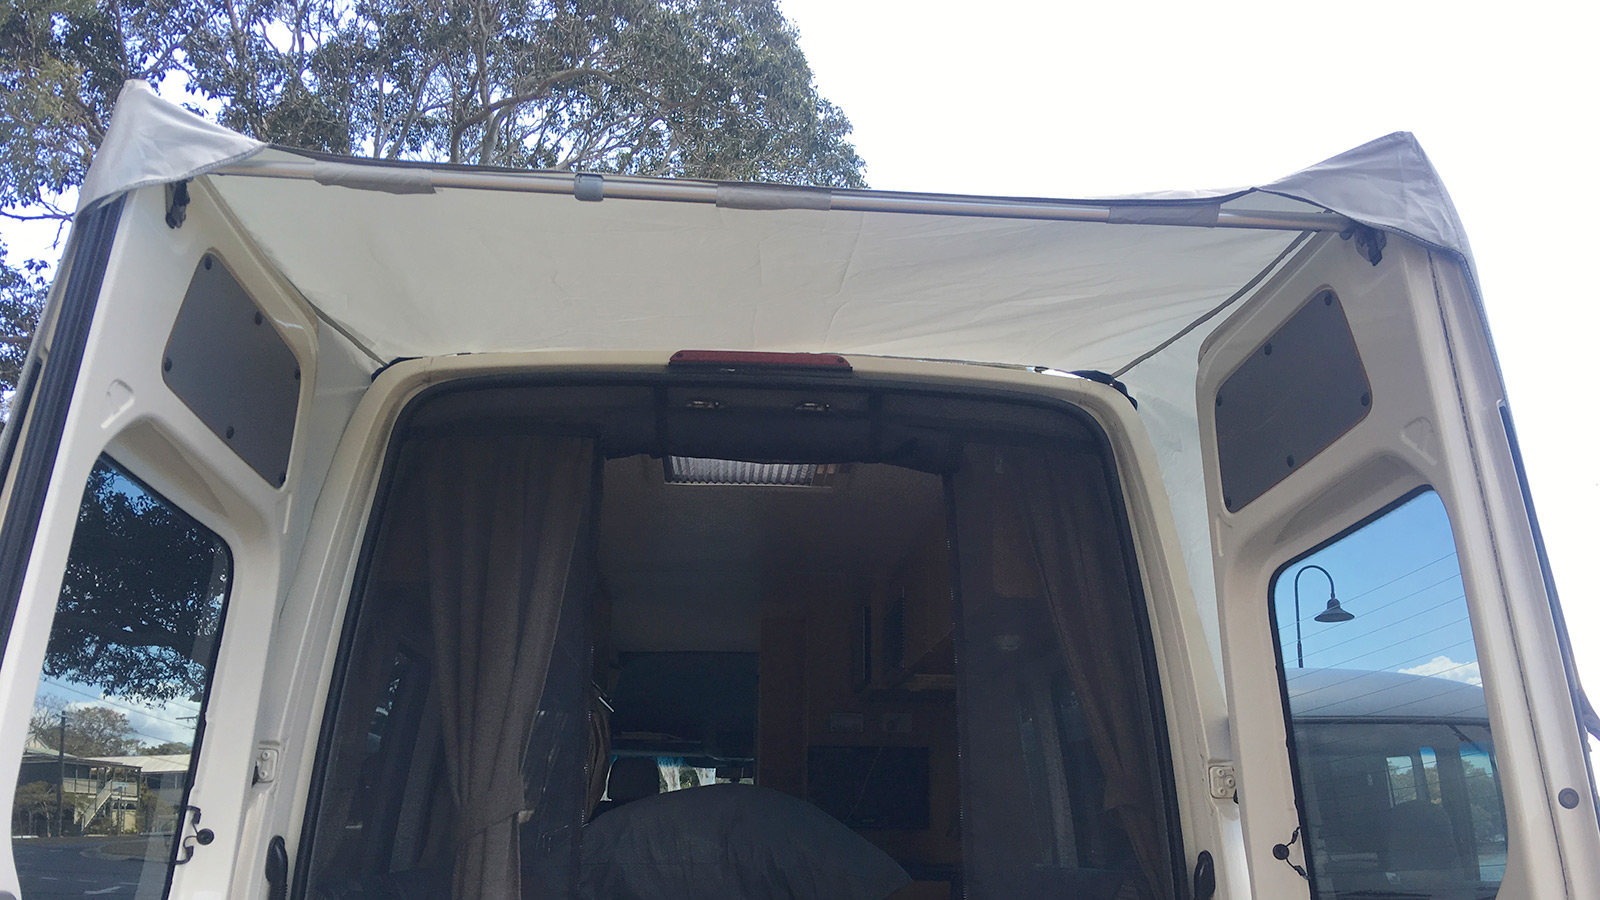 Mercedes Sprinter and VW Crafter rear awning